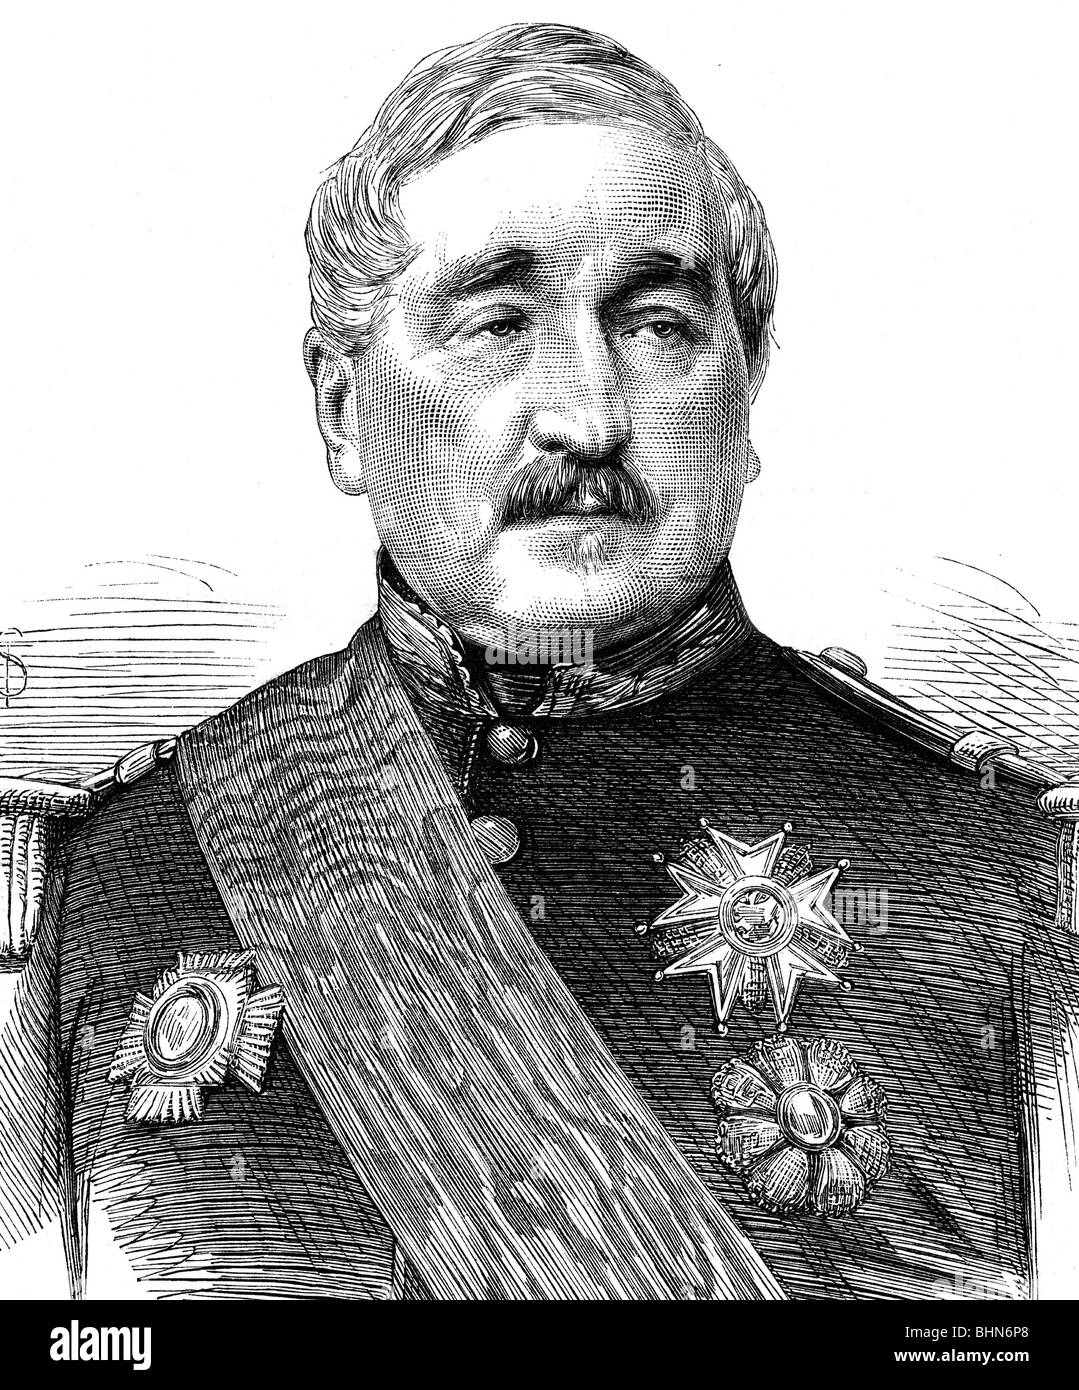 Cousin-Montauban, Charles, 24.6.1796 - 8.1.1878, French general and politician, Prime Minister 9.8.1870 - 4.9.1870, - Stock Image